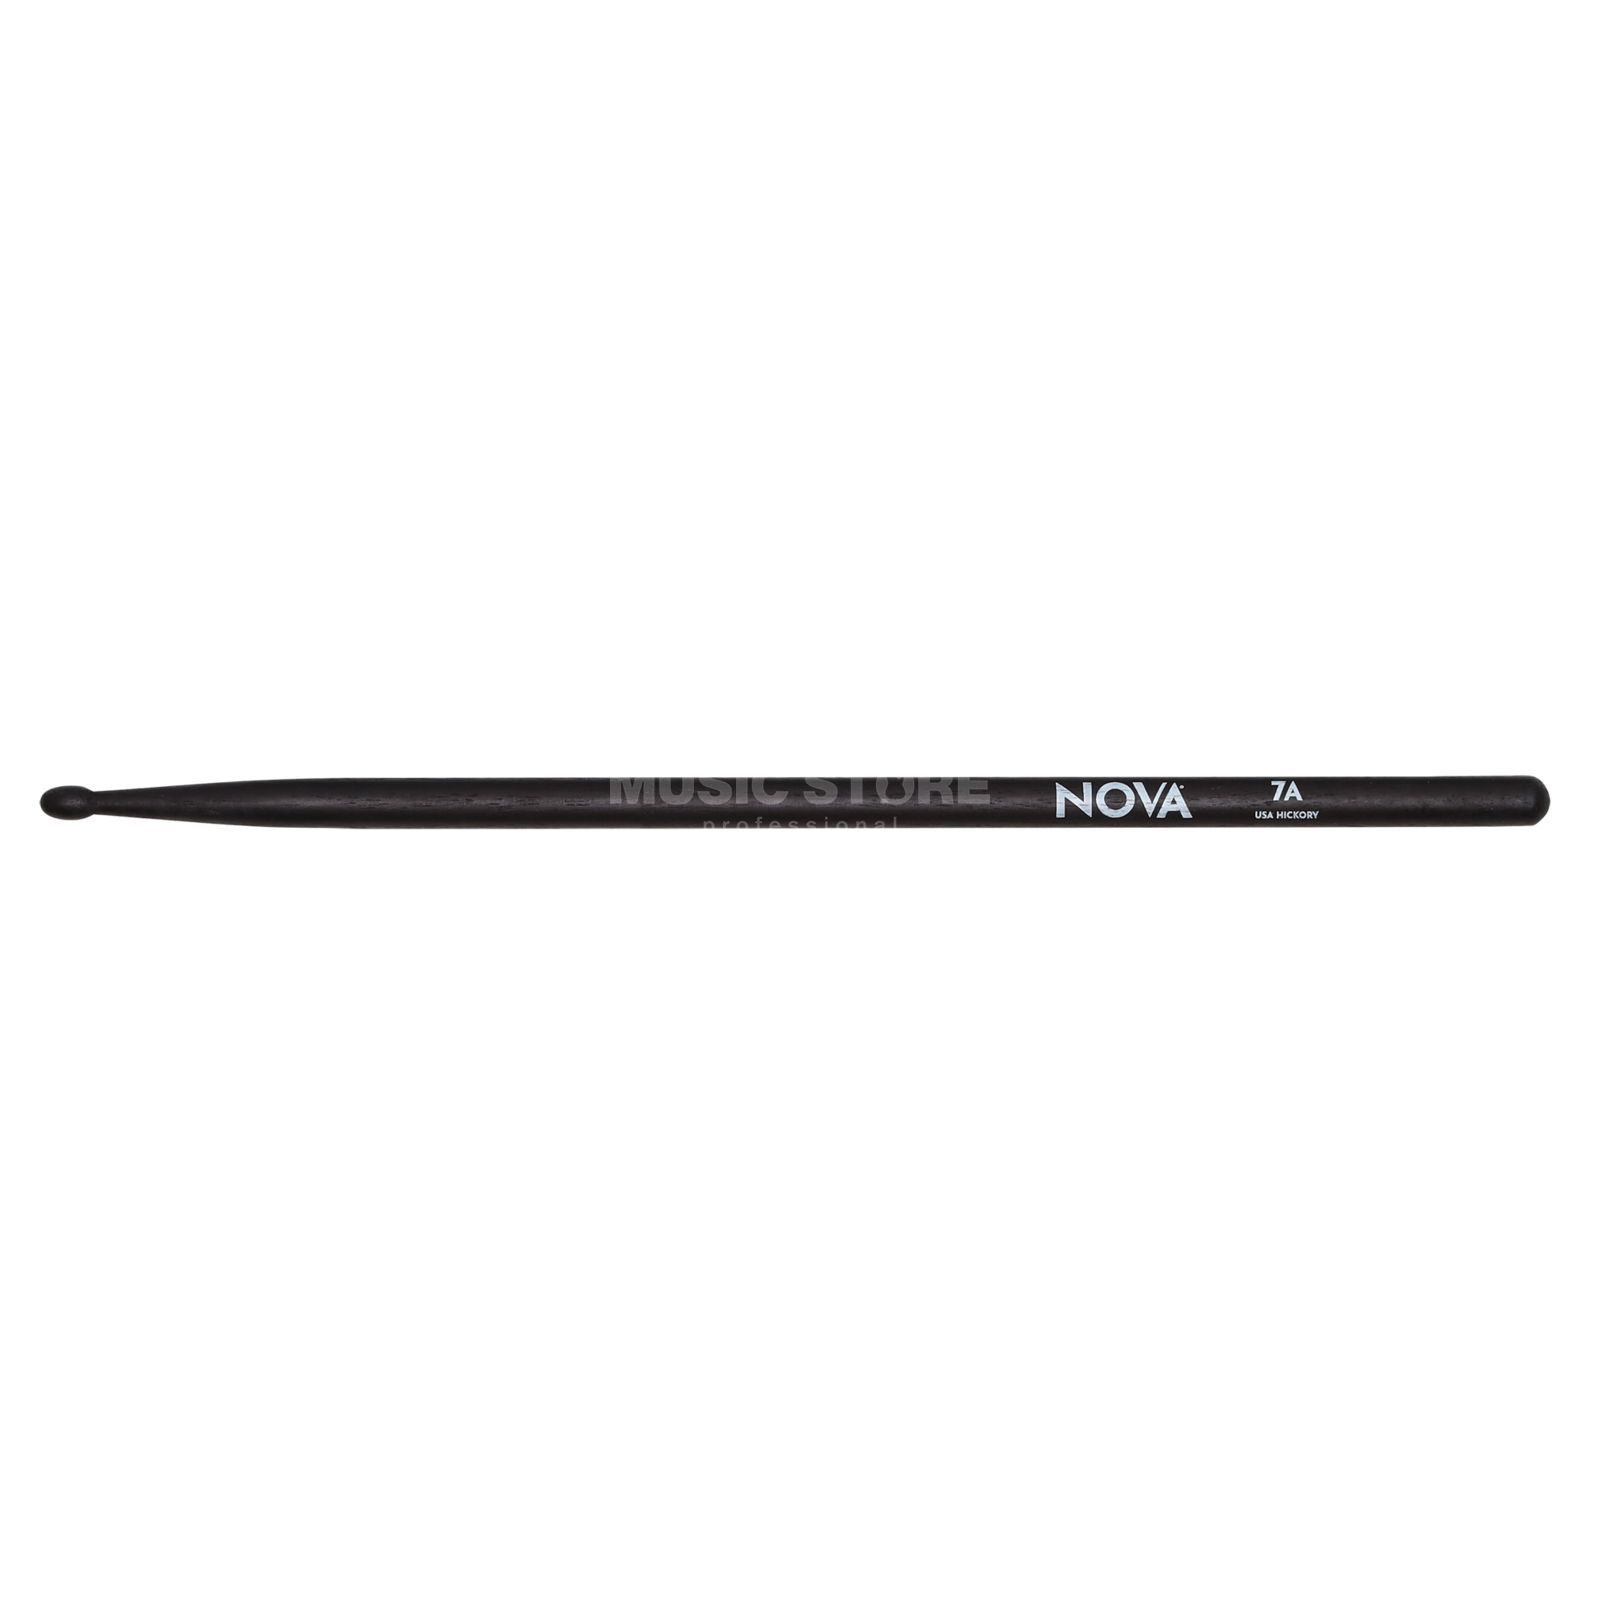 Vic-Firth Nova Drum Sticks 7AB, Wood Tip Produktbild